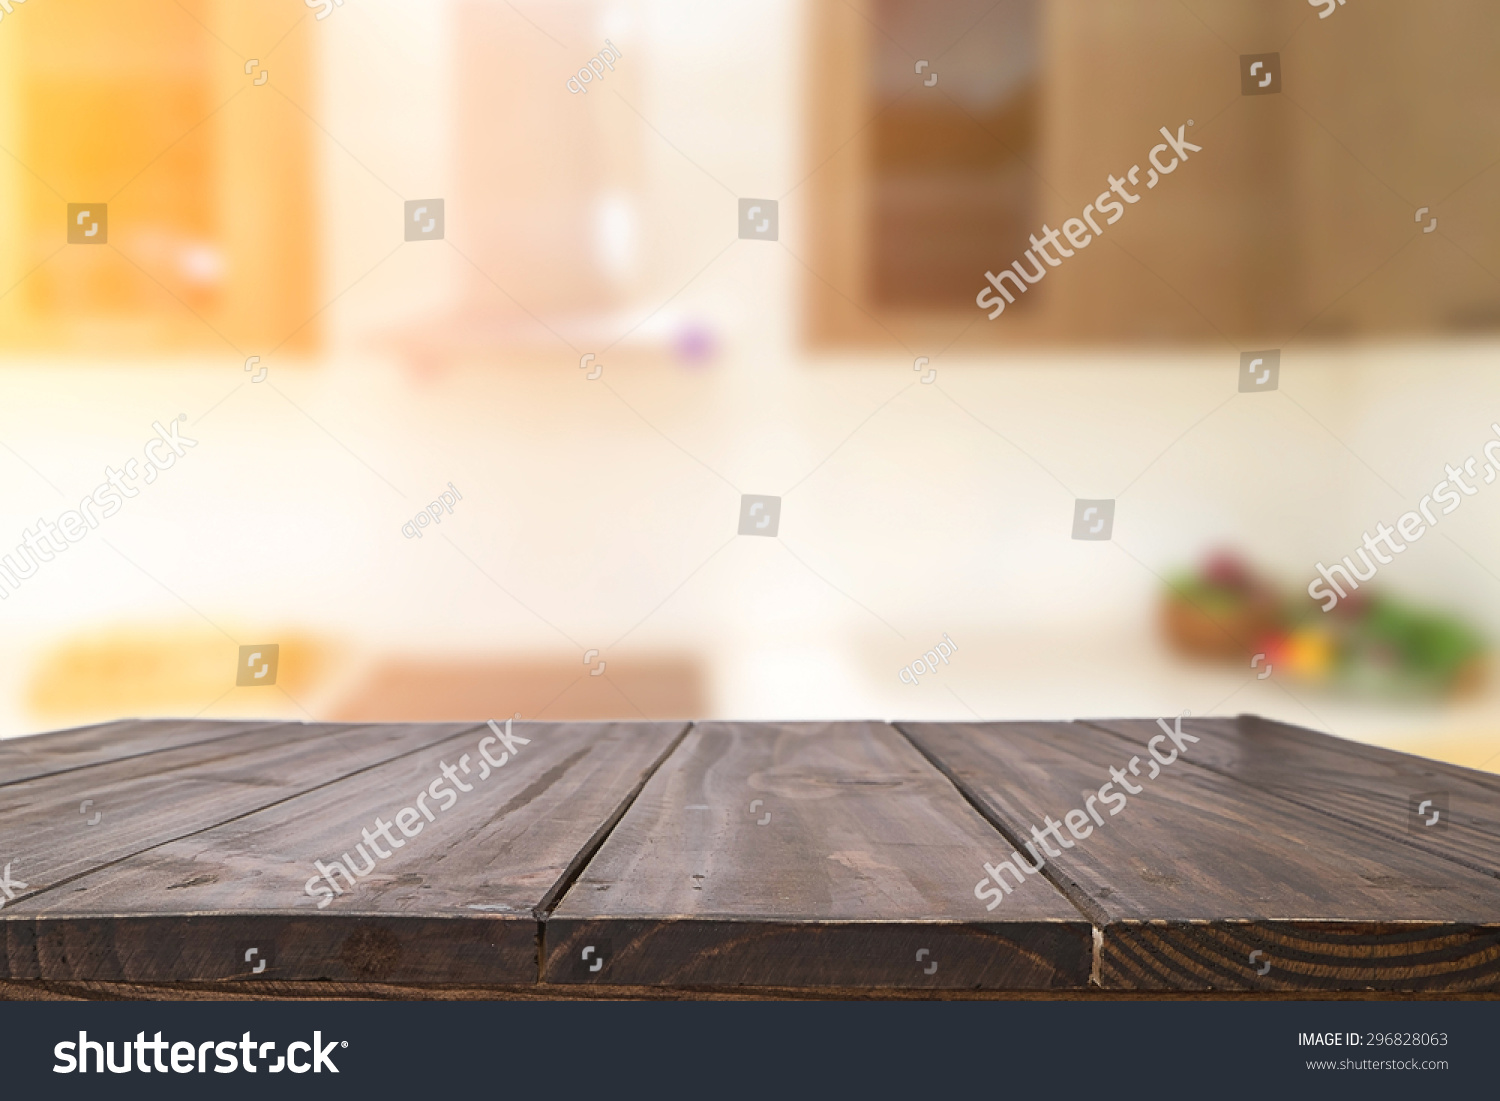 Wooden Desk Background ~ Royalty free wood desk space and kitchen background